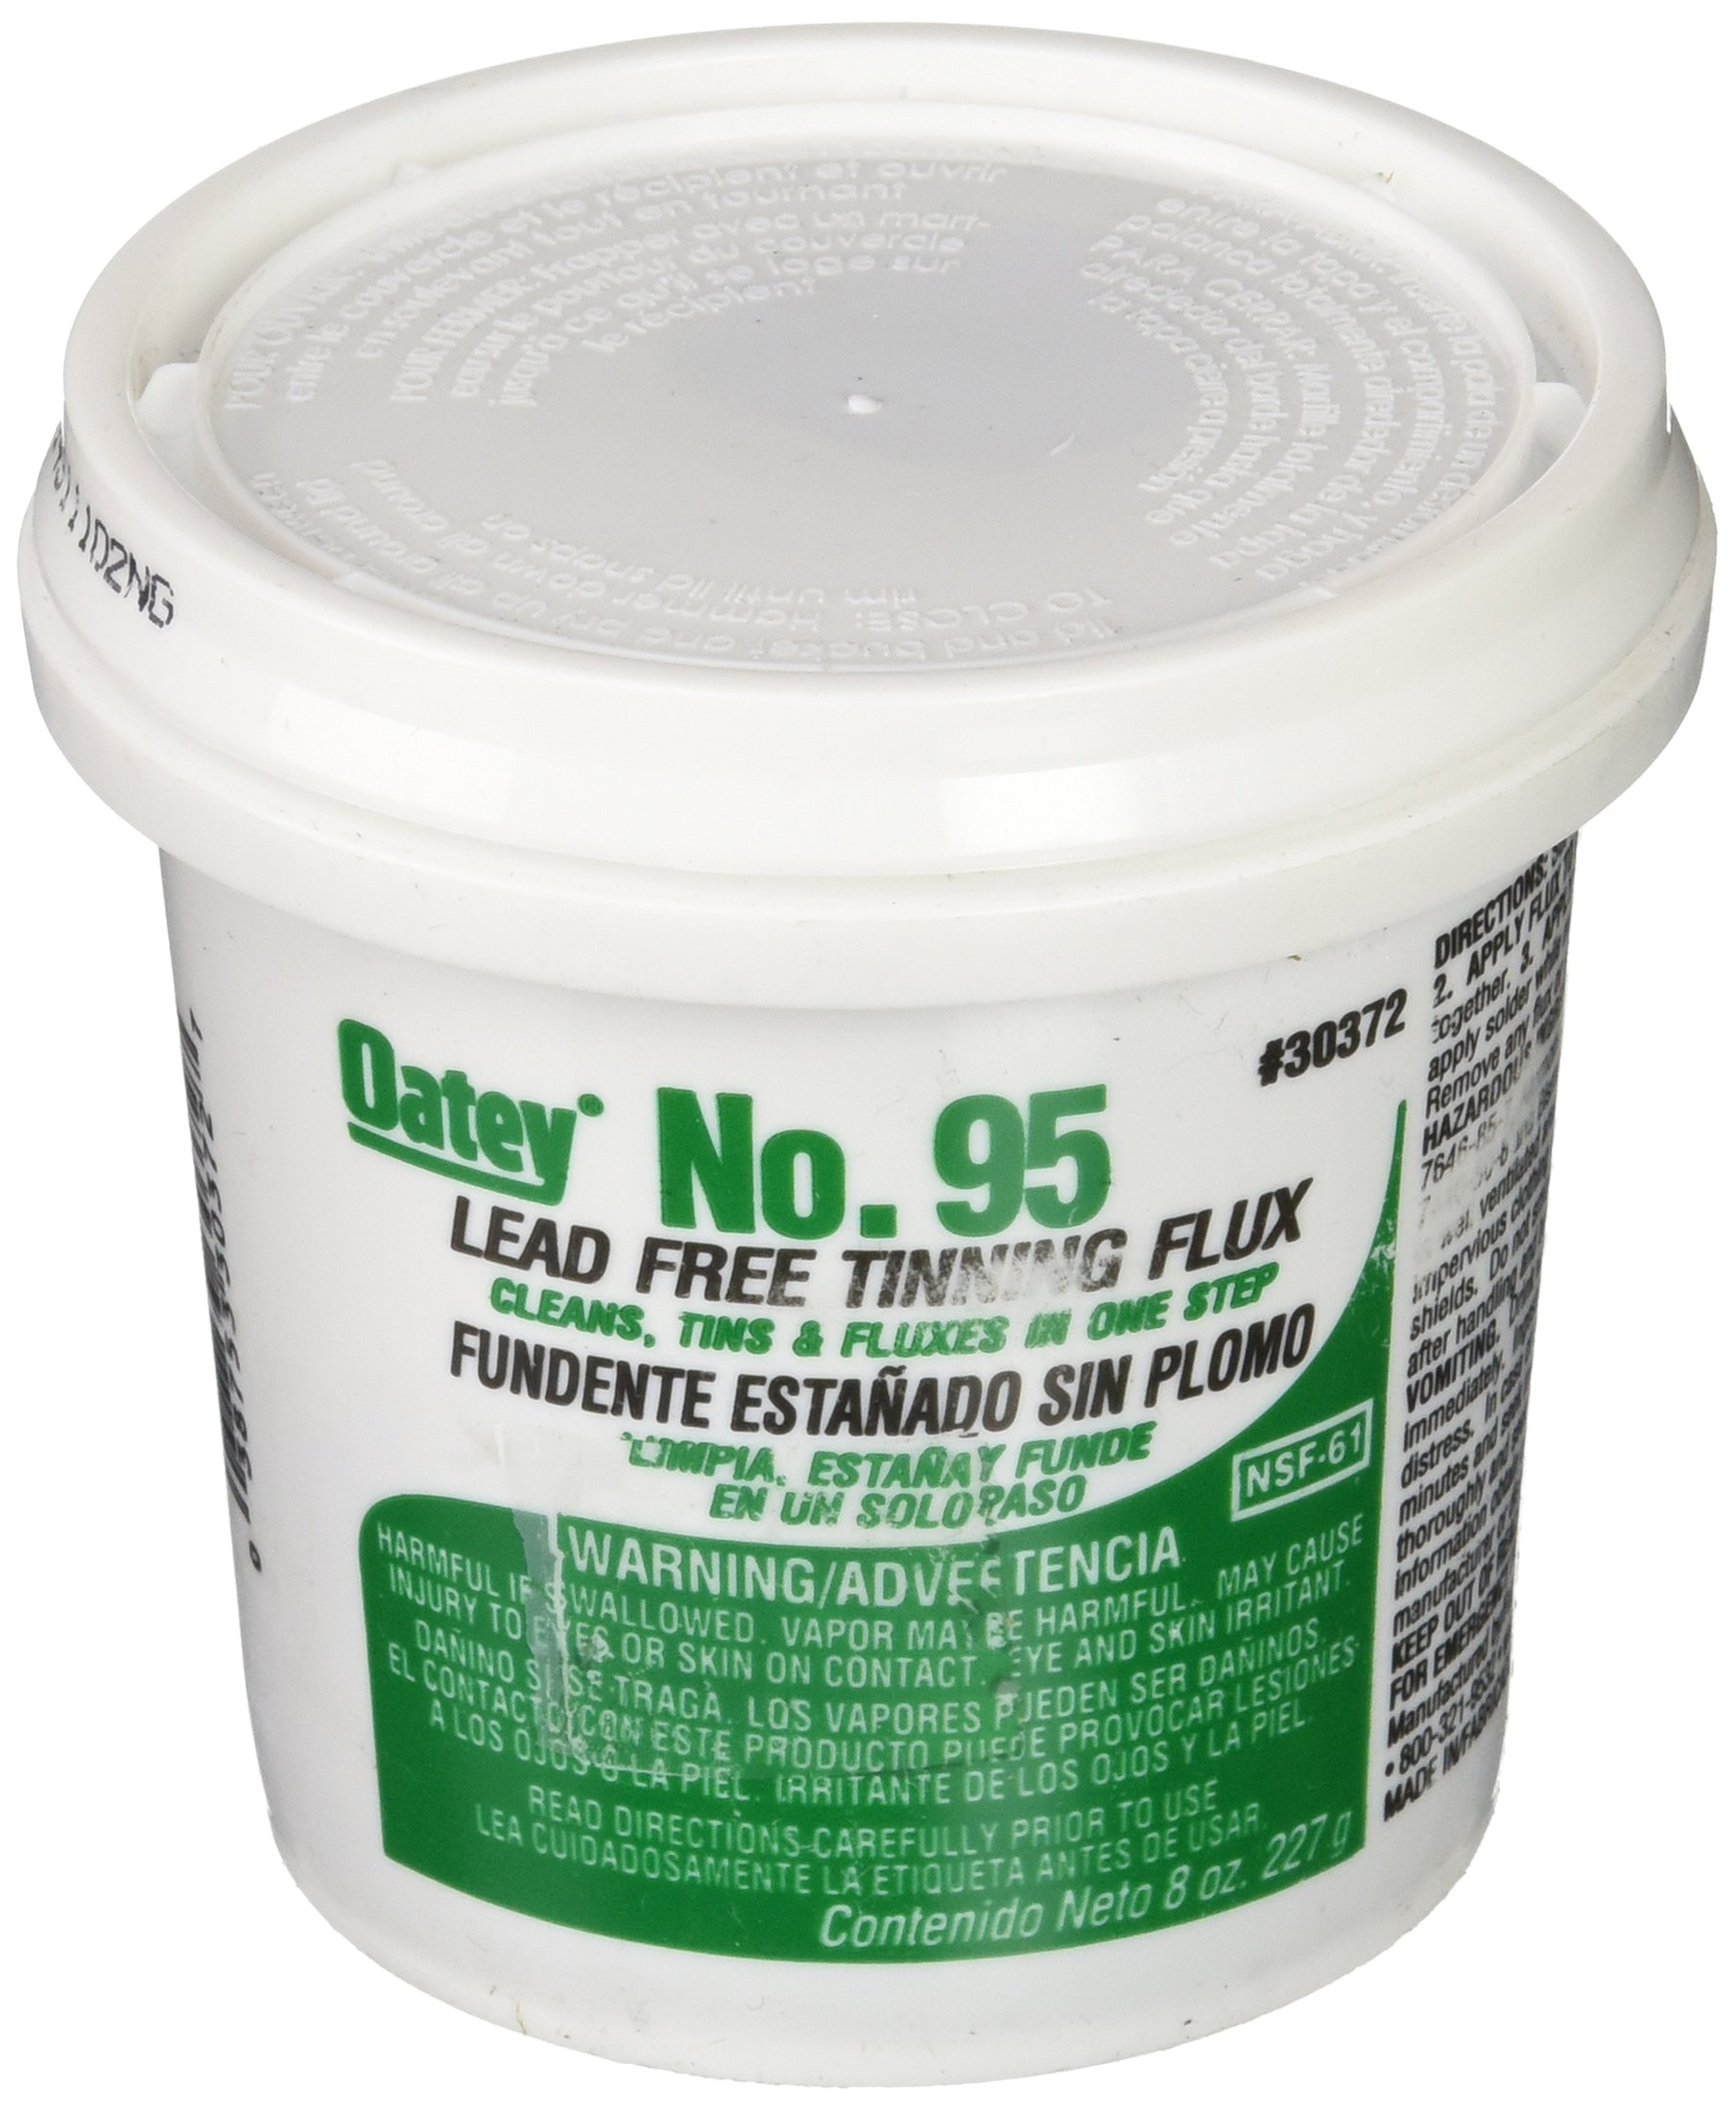 Oatey 30372 No. 95 Tinning Flux, Lead Free 8-Ounce product image